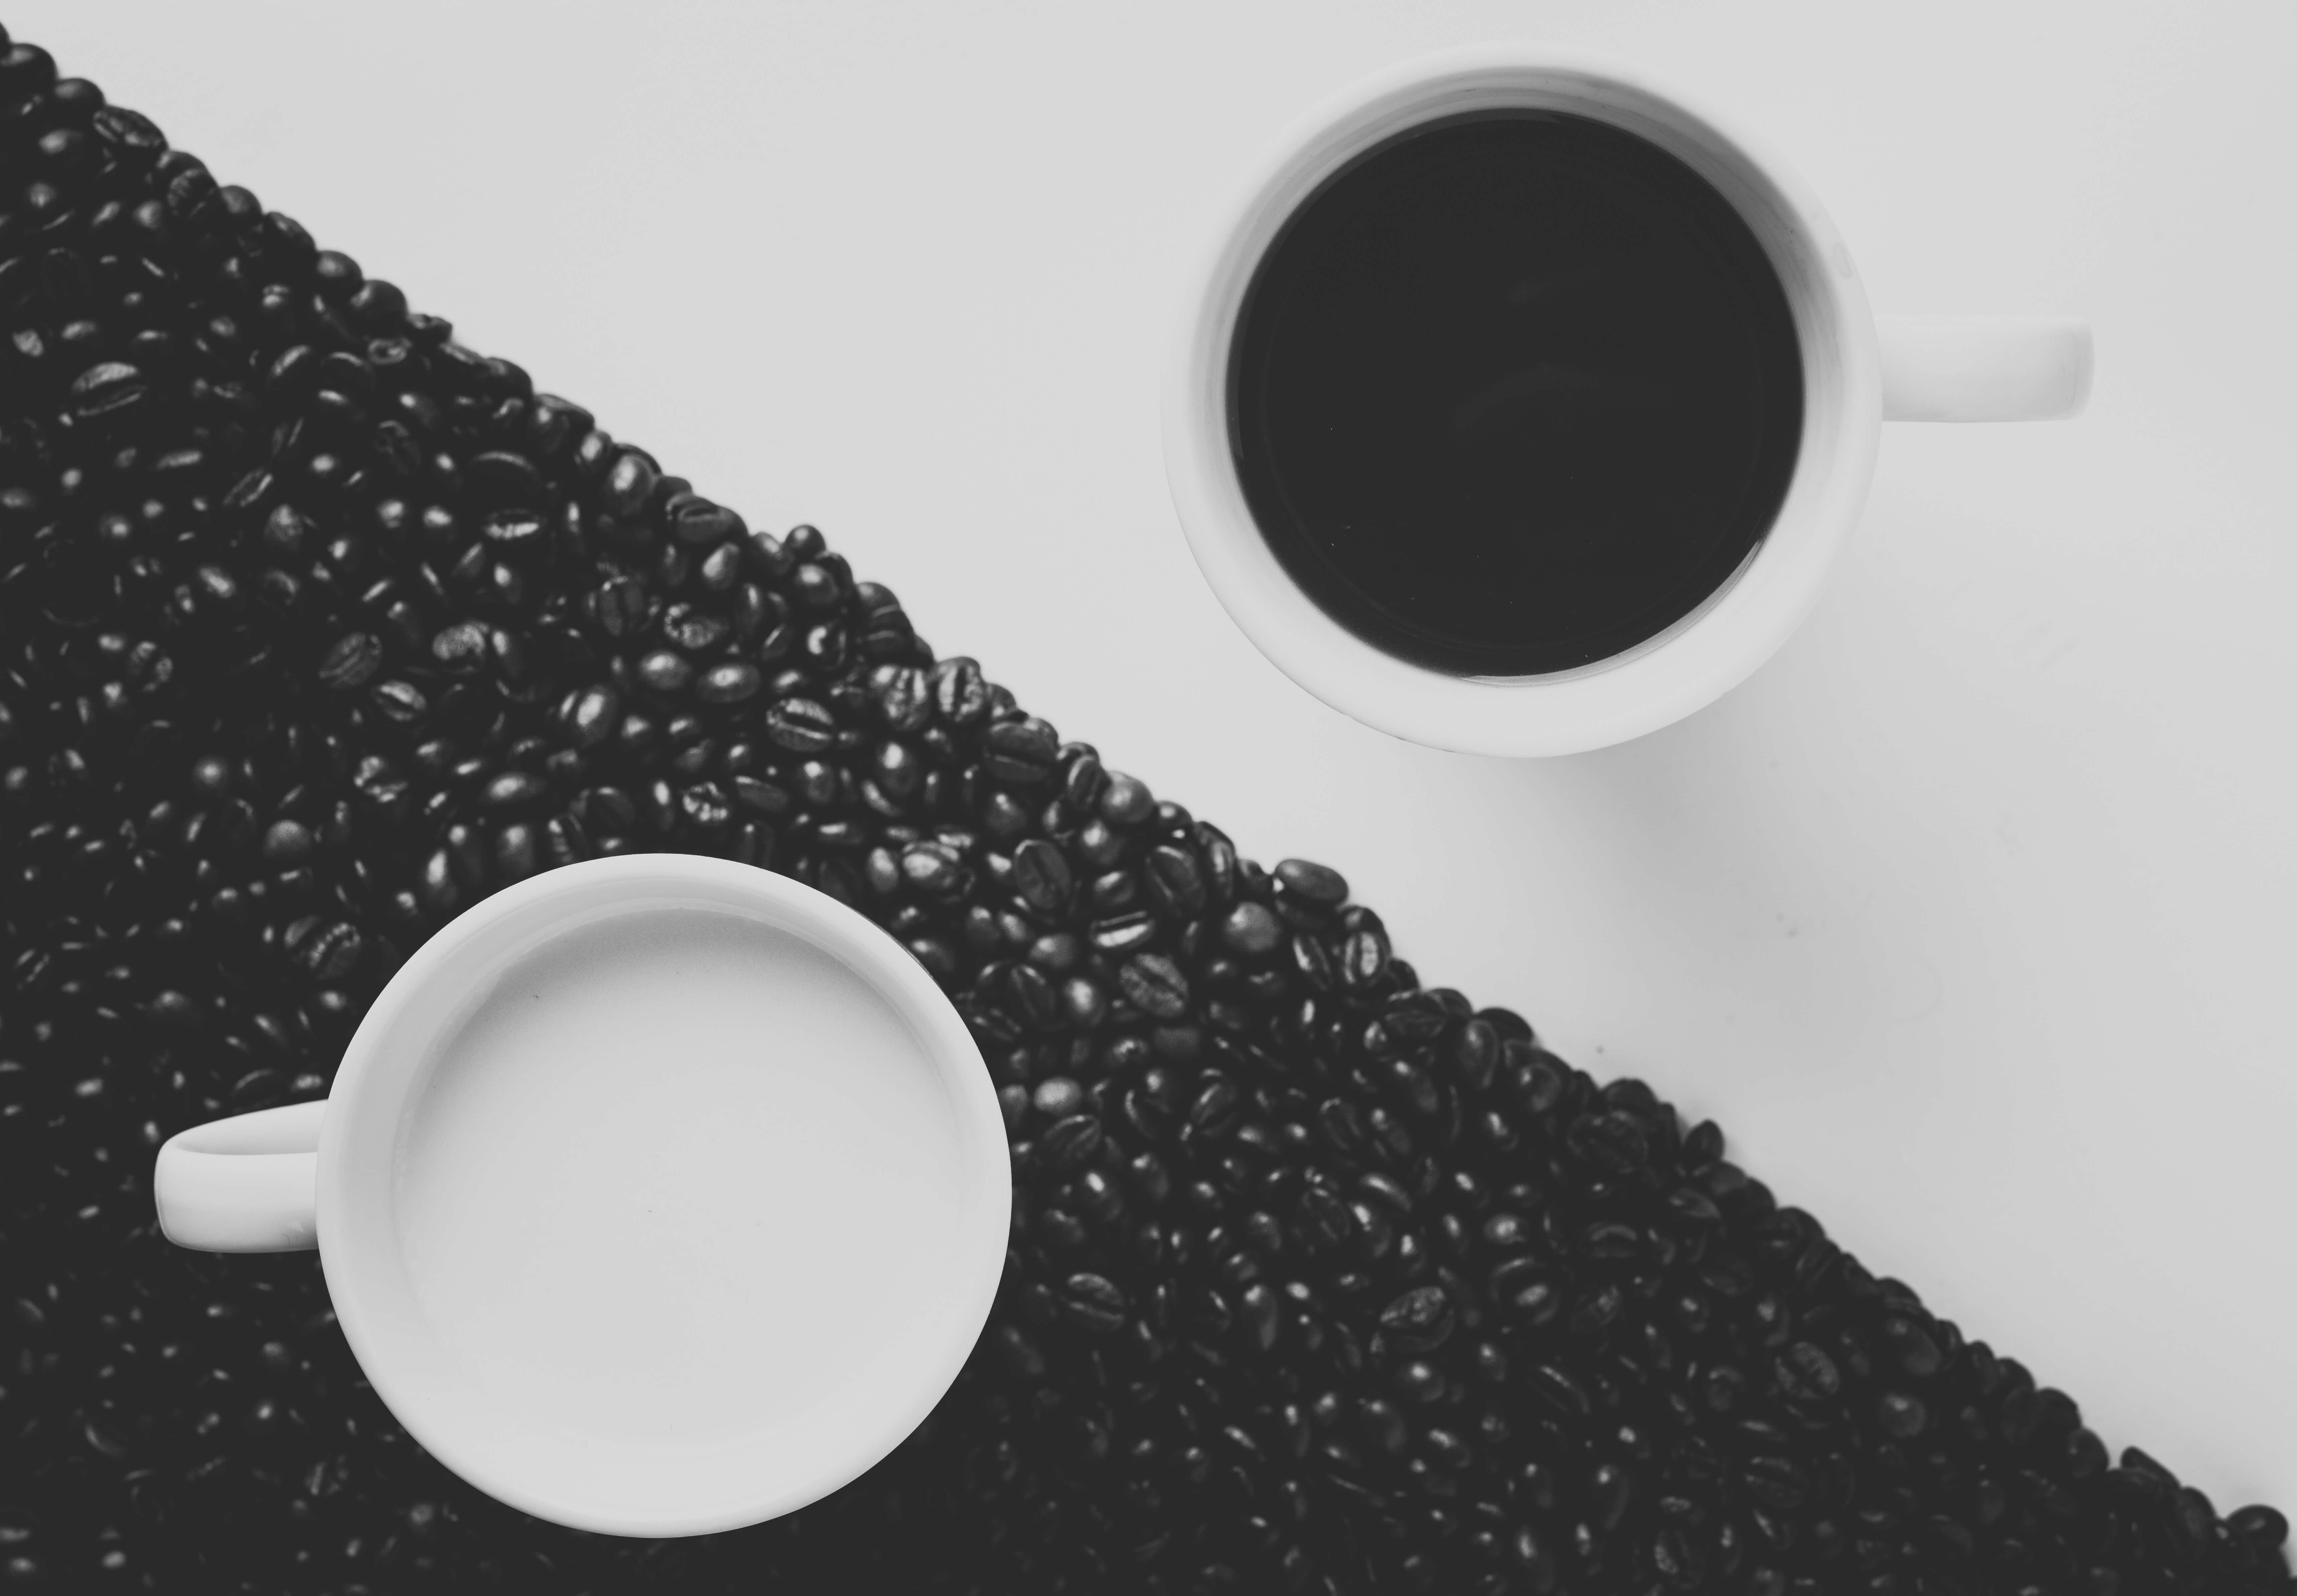 Two coffee mugs placed diagonally opposite to each other and coffee beans scattered around one of the mugs